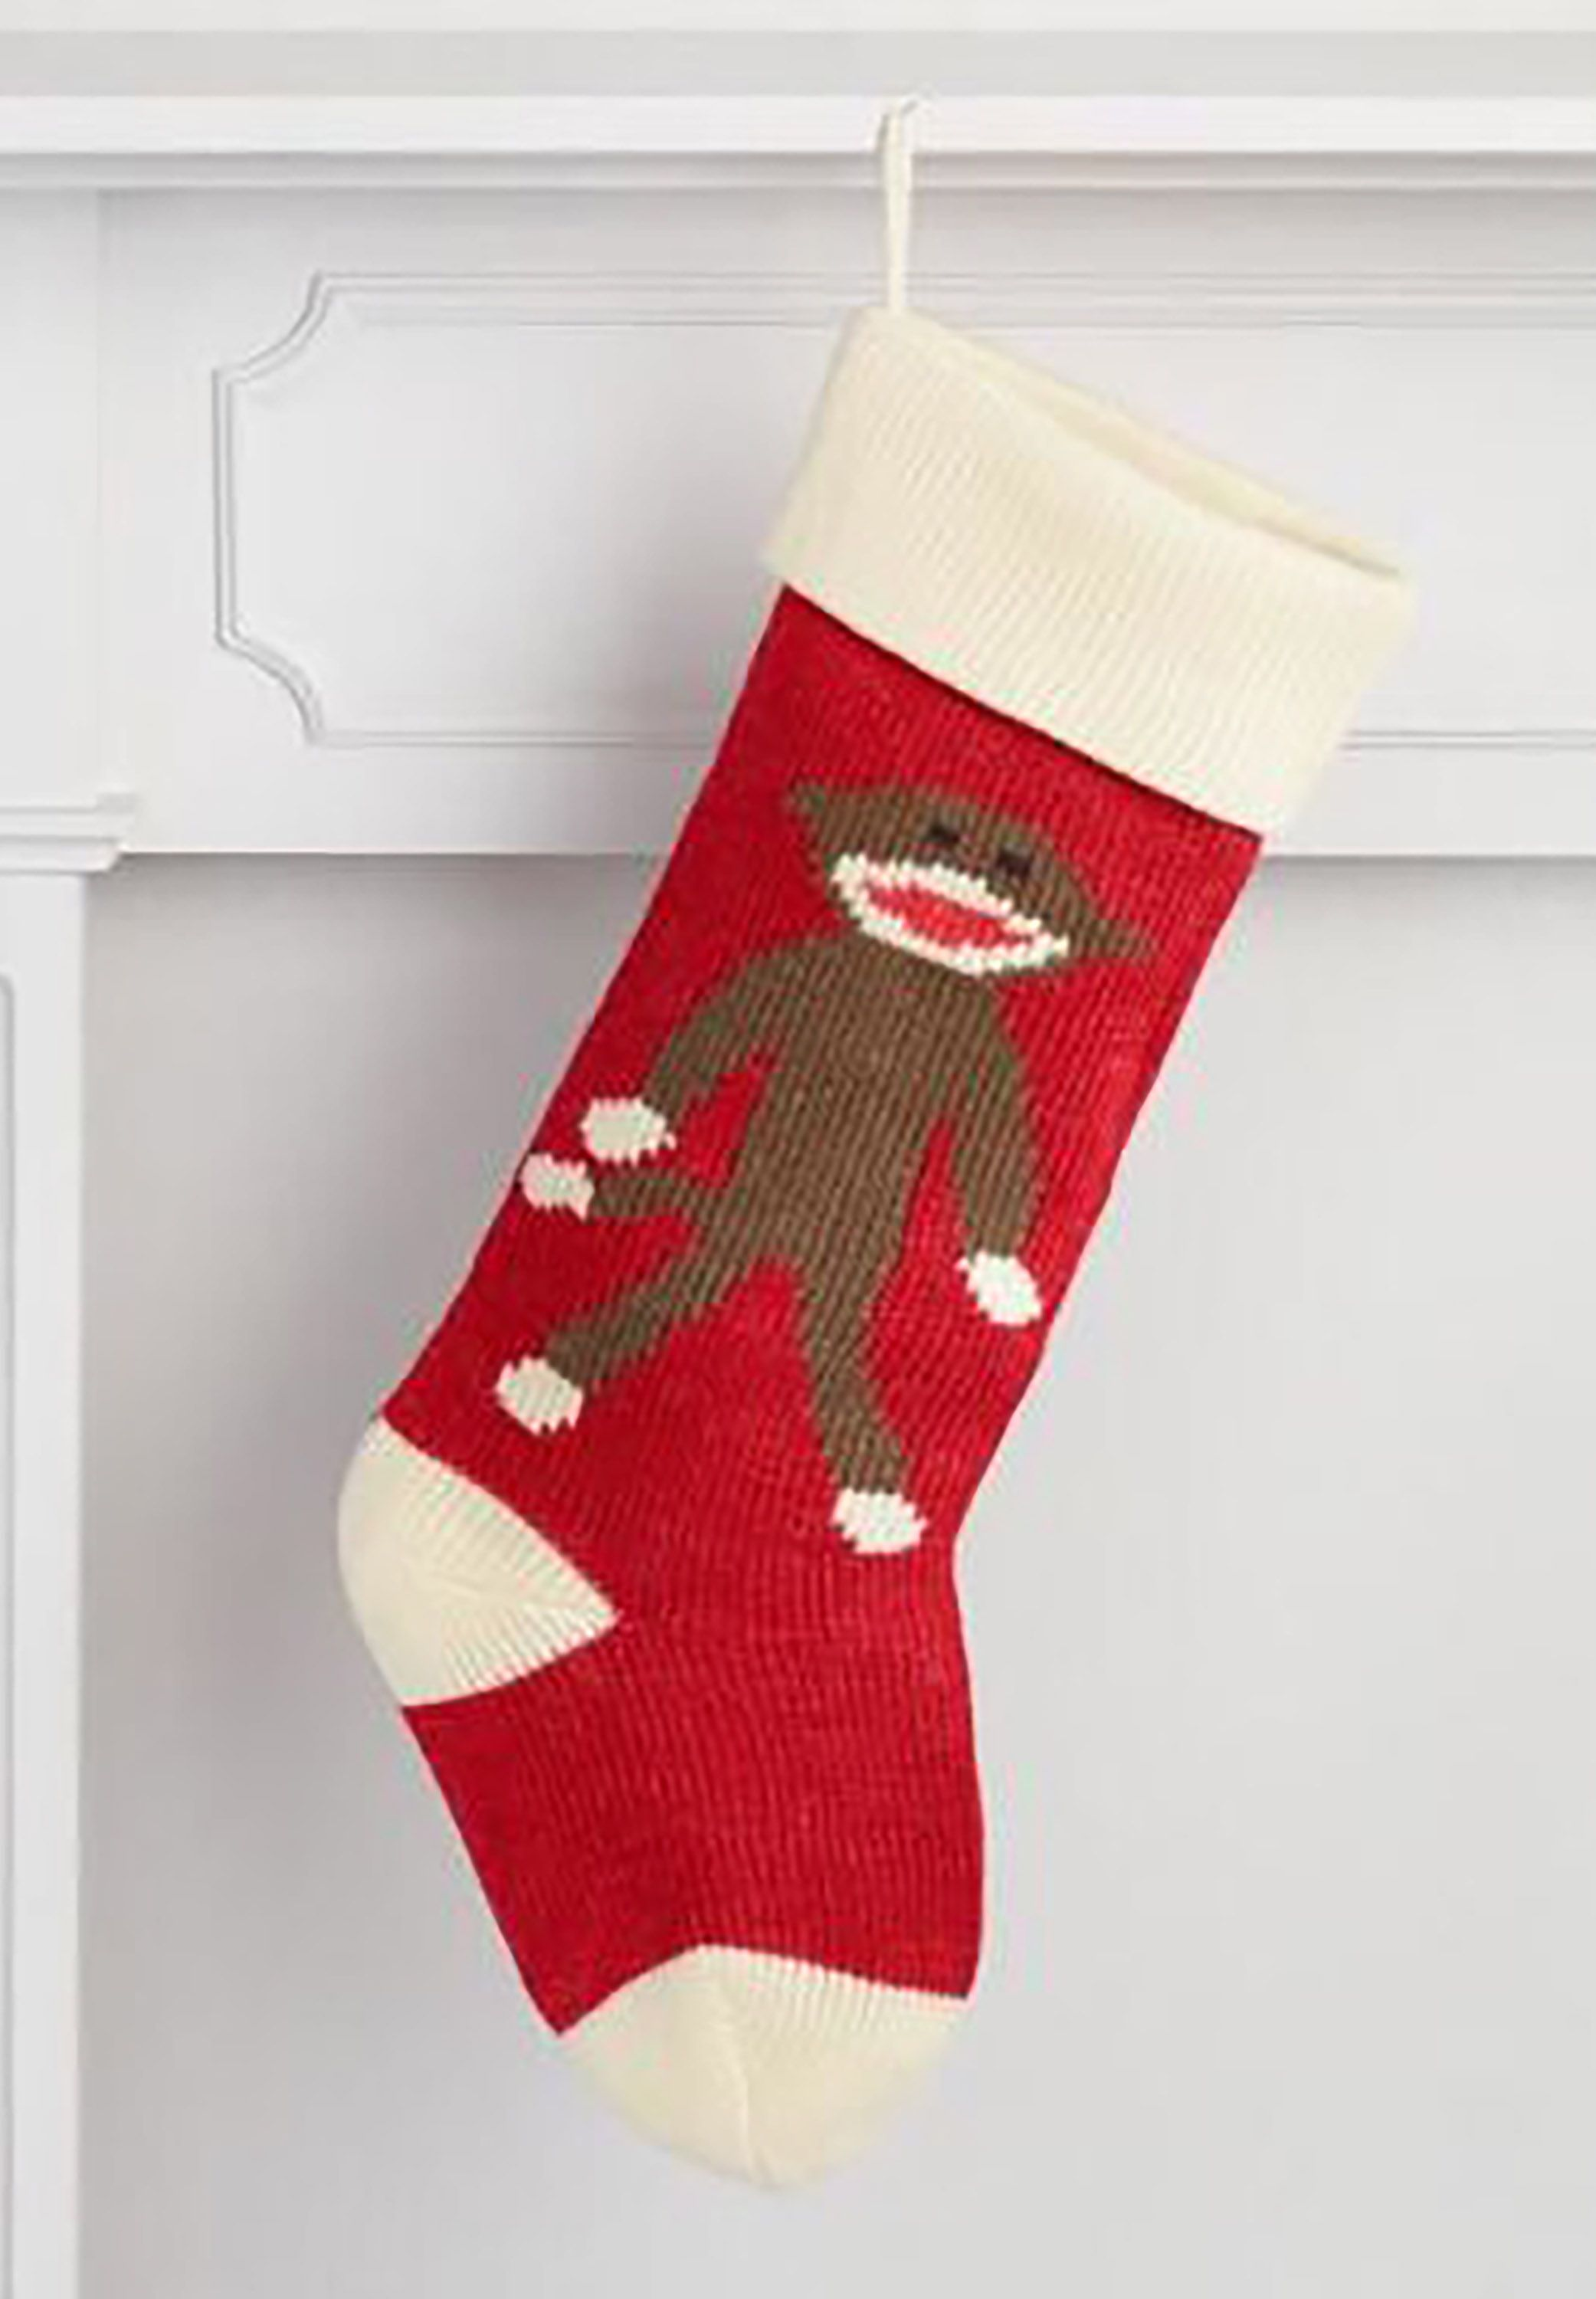 11 babys first christmas stockings cute ideas for infant boy and 11 babys first christmas stockings cute ideas for infant boy and girl stockings solutioingenieria Images